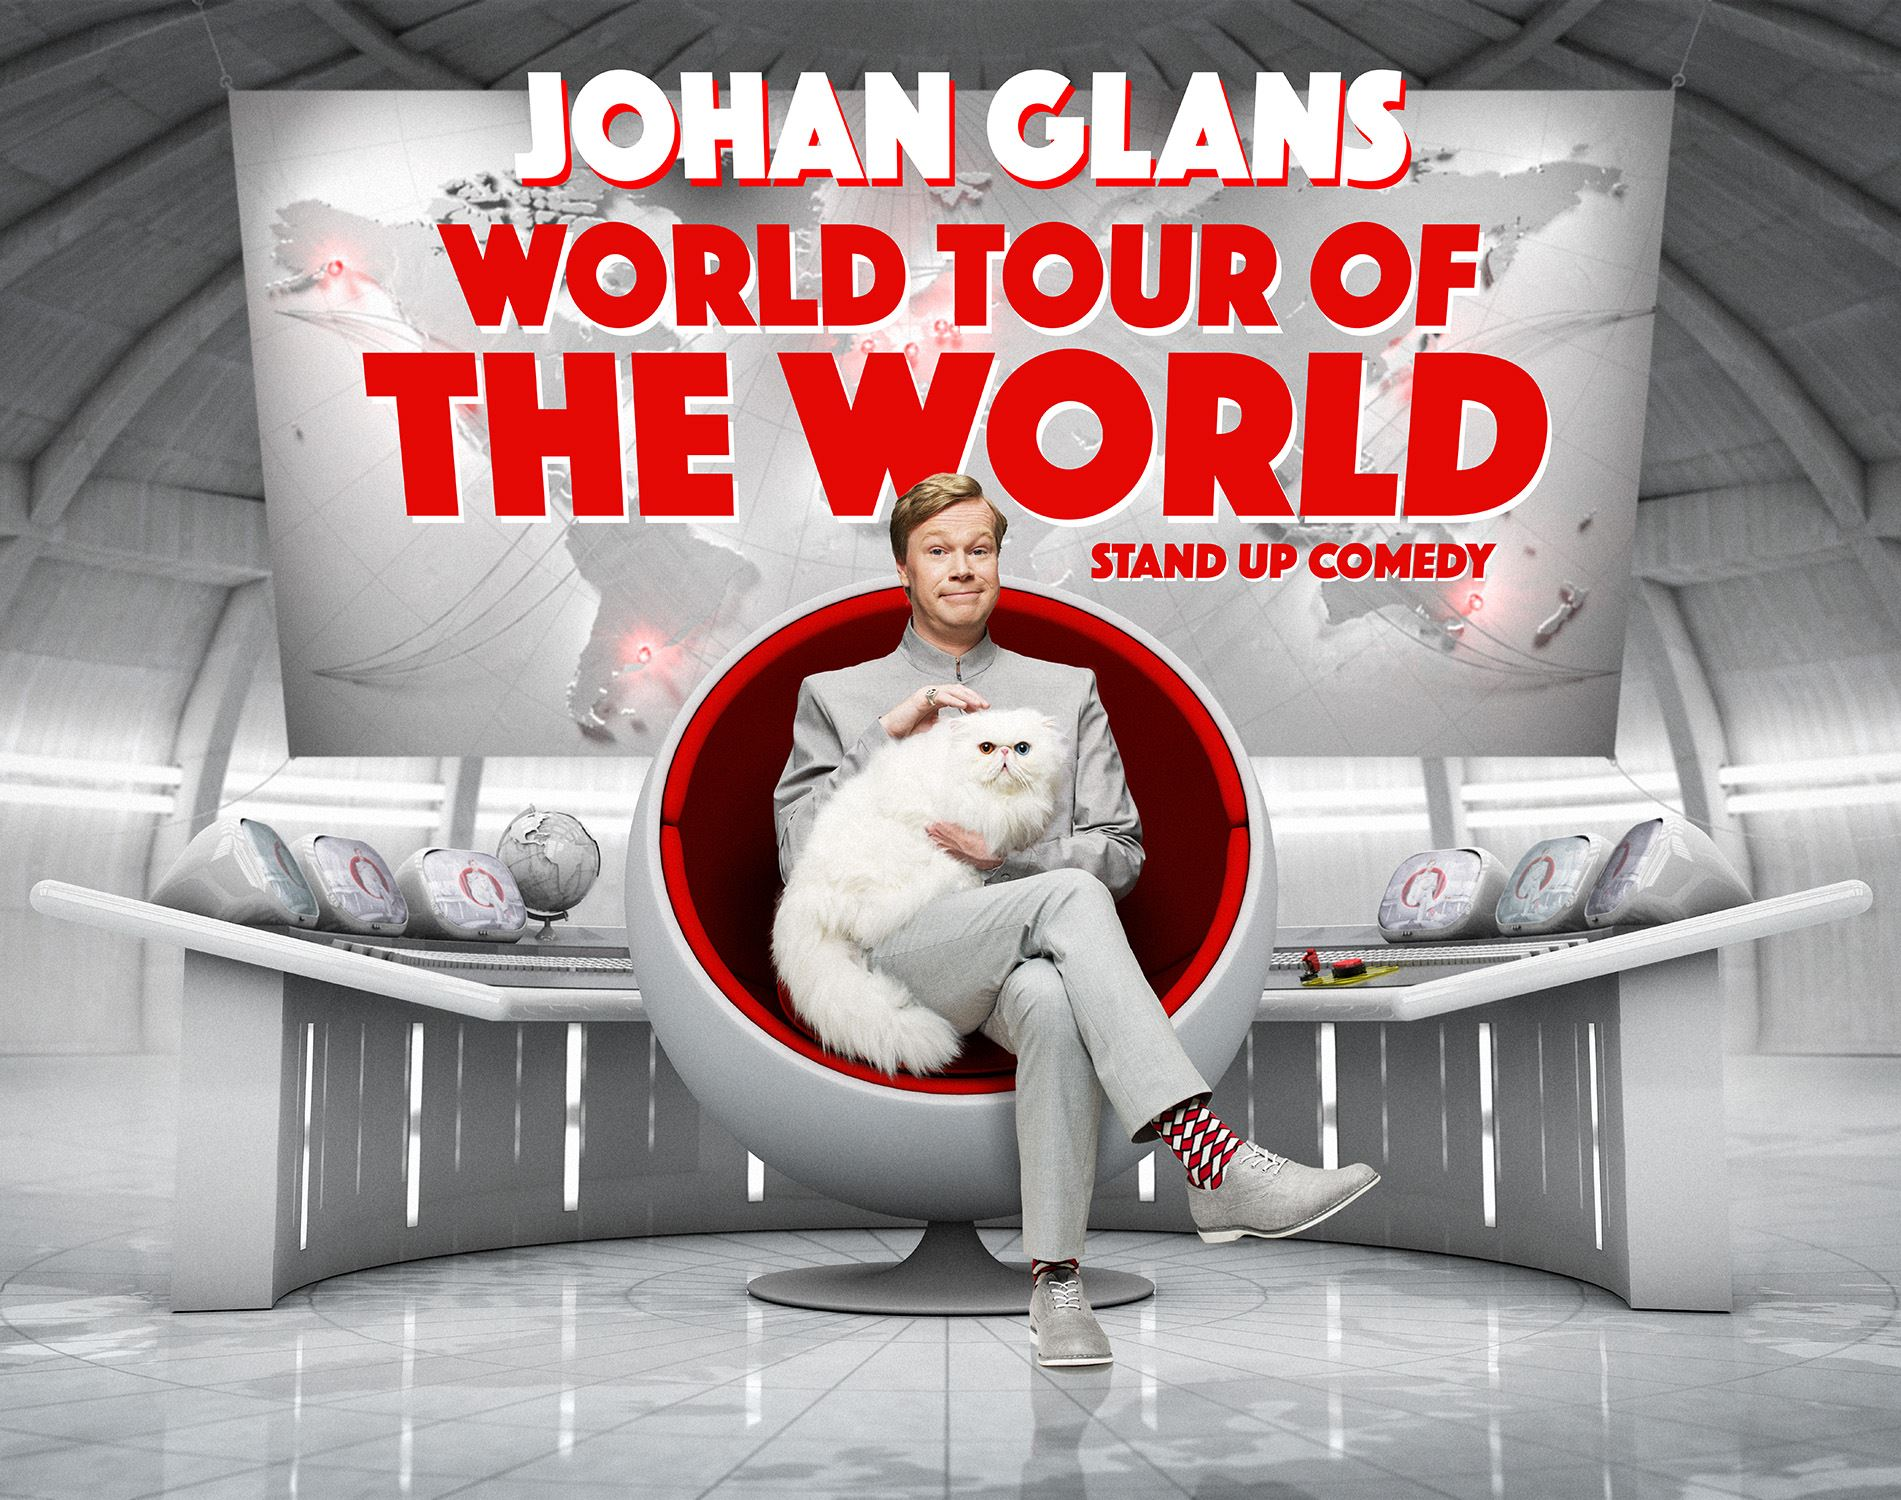 Johan Glans - World Tour Of The World